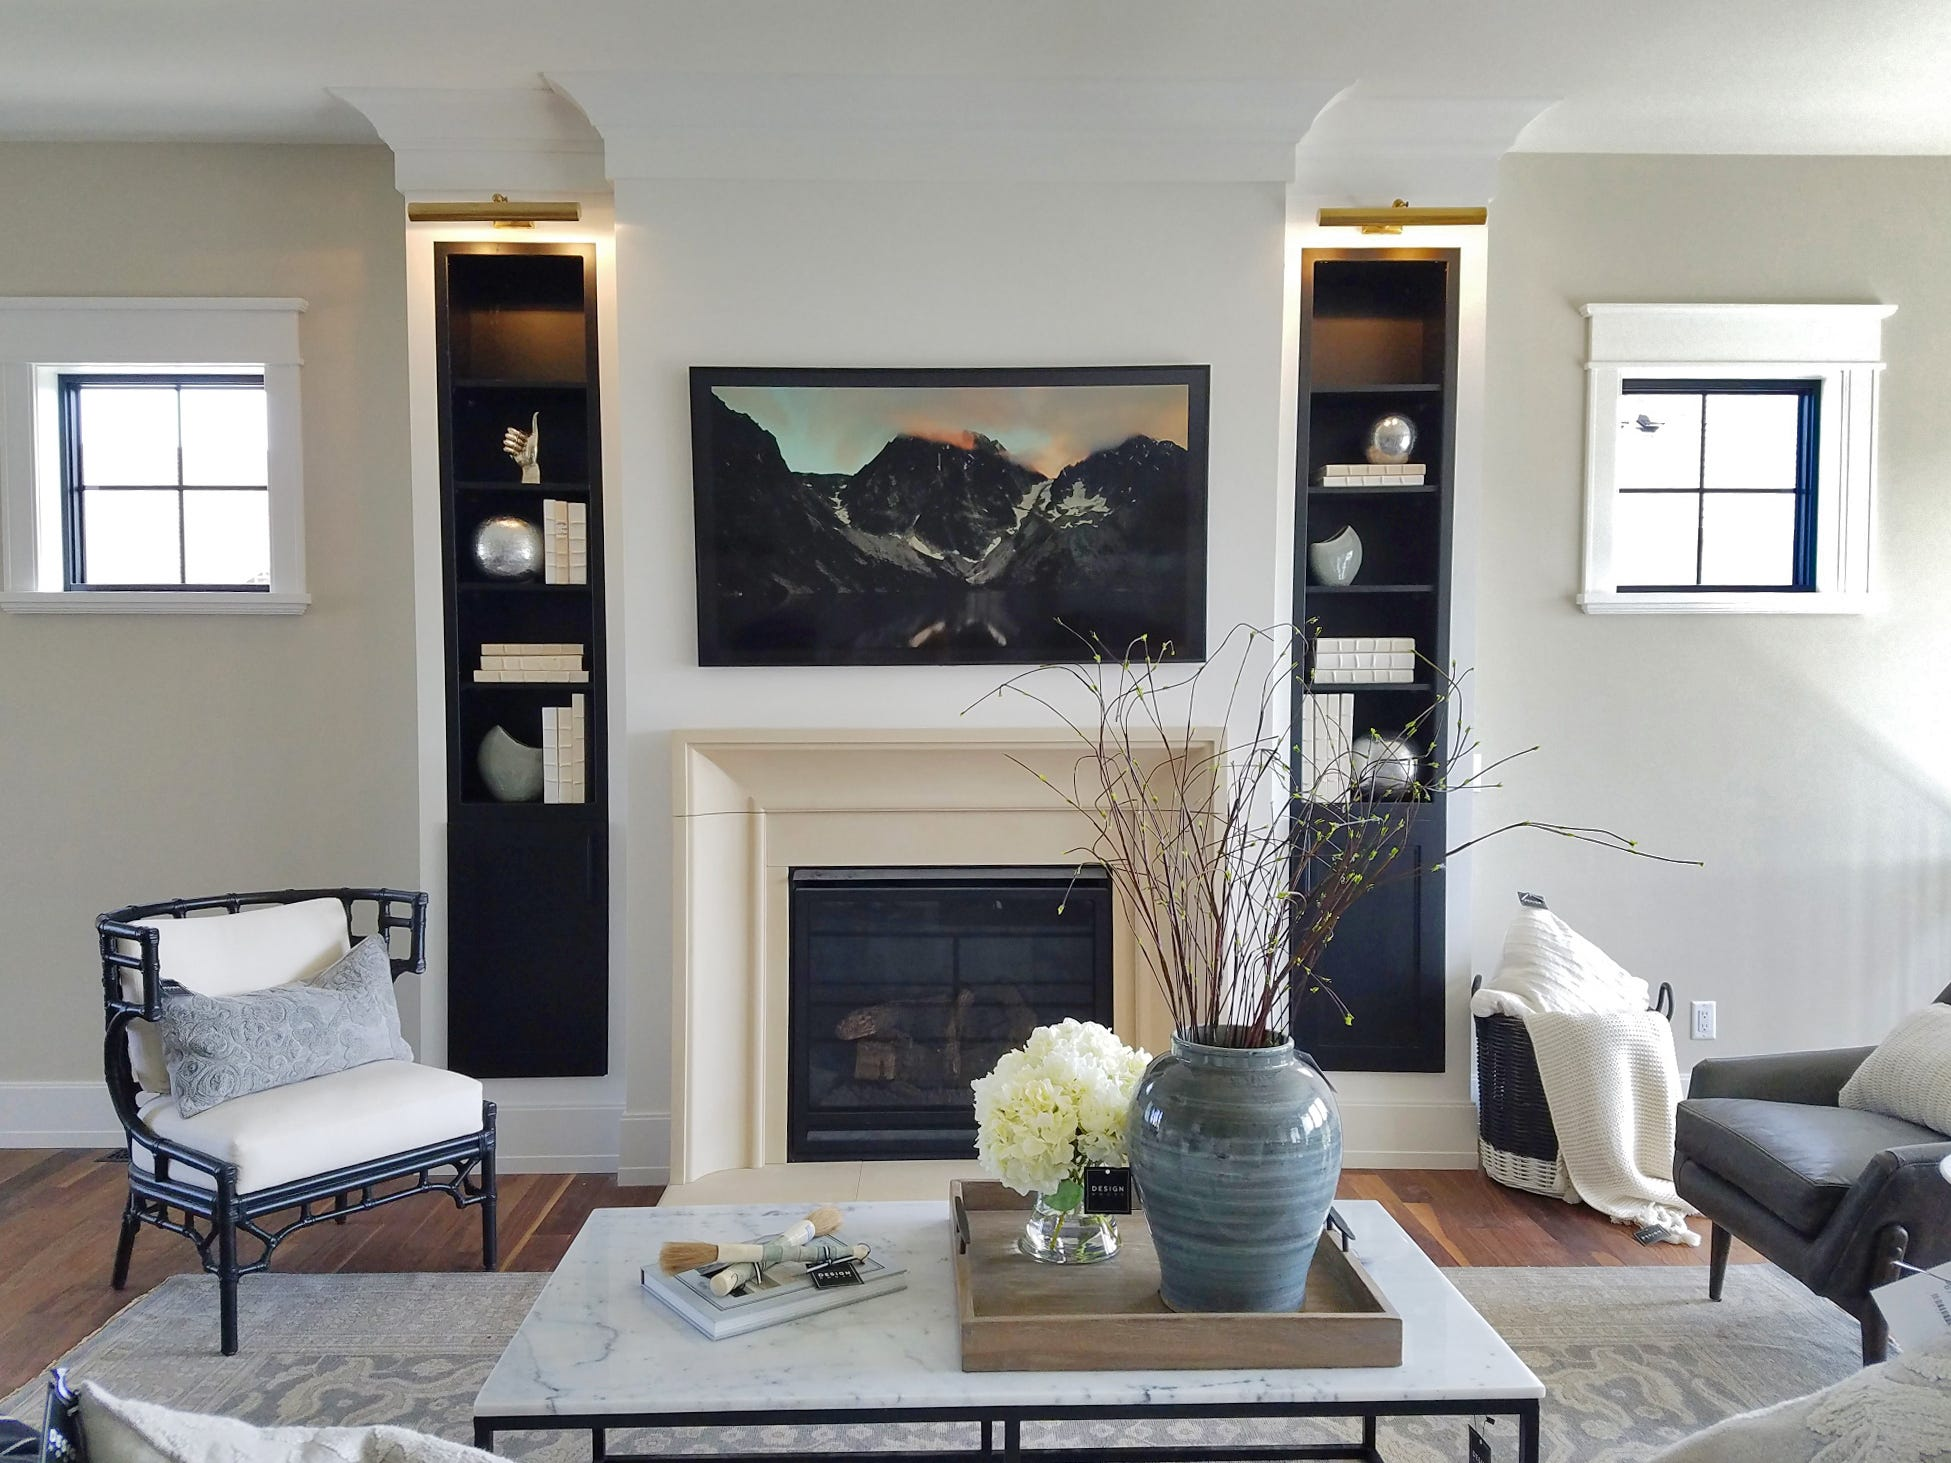 A photo of the home at 7504 S. Grand Arbor Court, by Amdahl Construction Co, one of the houses featured in the Spring 2019 Parade of Homes.